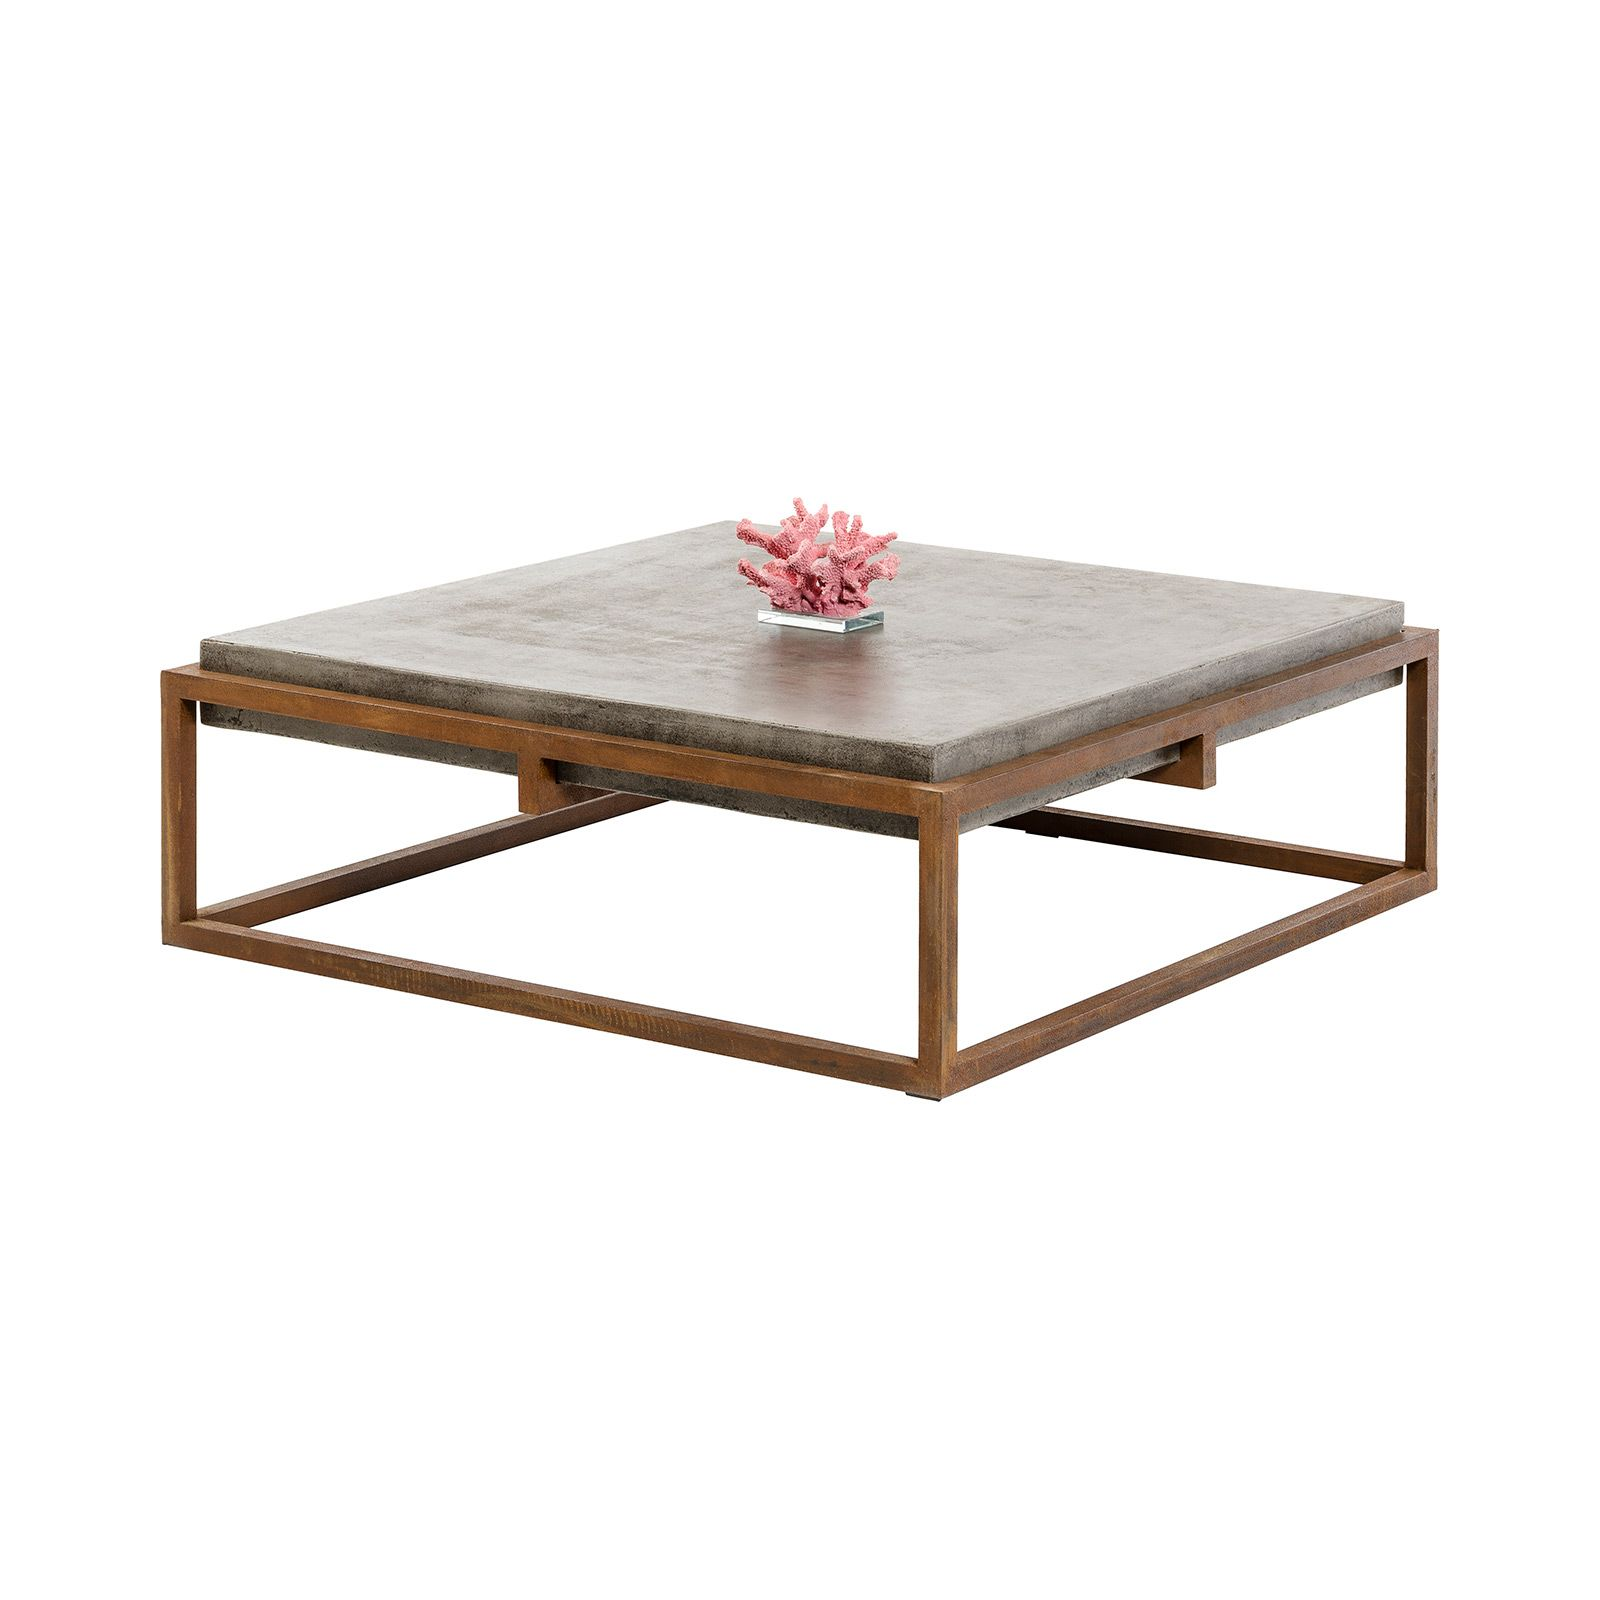 Dot and Bo mid century Rockford Coffee Table, $508